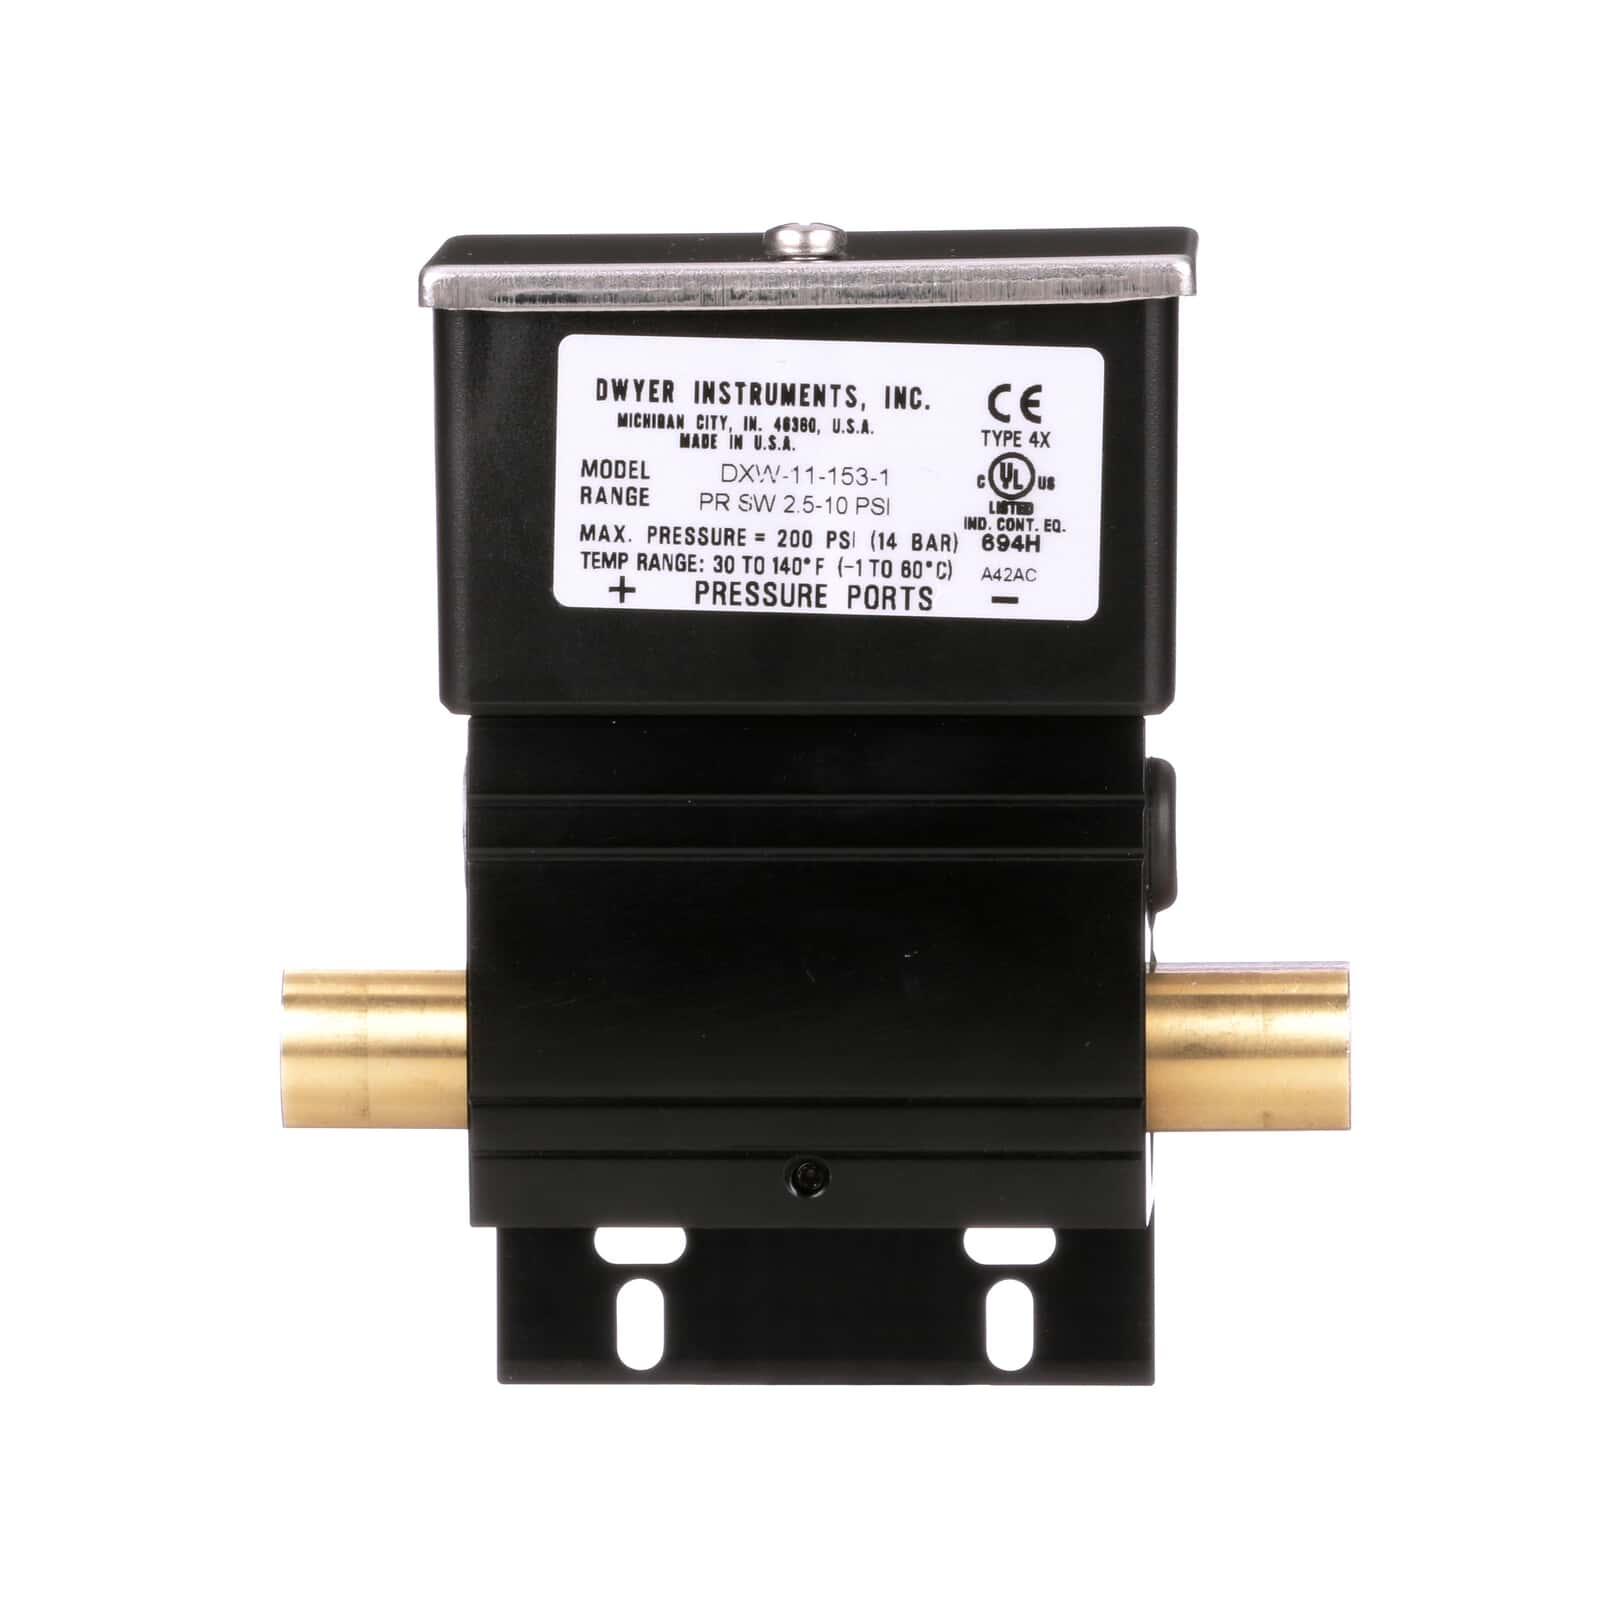 Series Dx Wet Differential Pressure Switch For Use With Most Washing Machine Wiring Diagram Swipe To Spin